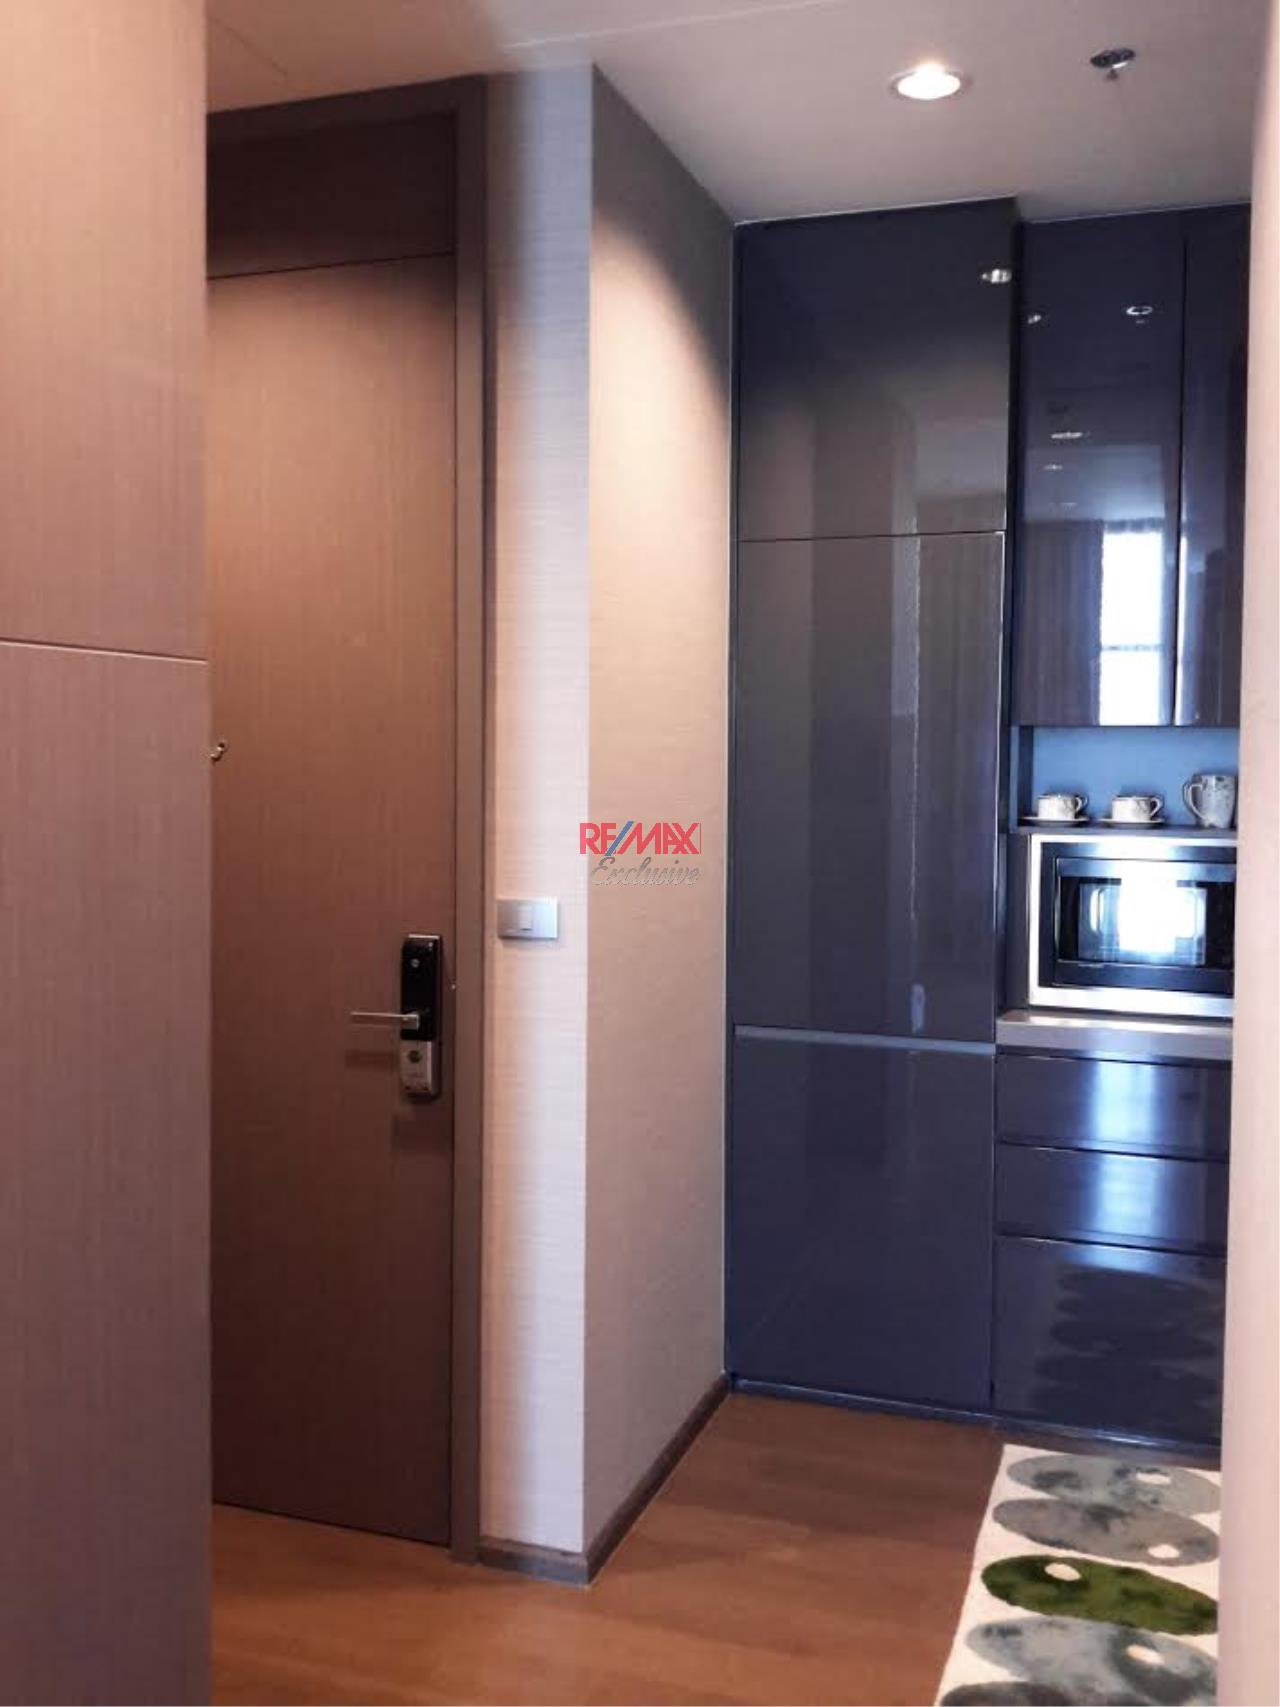 RE/MAX Exclusive Agency's The Diplomat Sathorn 1 Bedroom for rent 40,000 THB 5